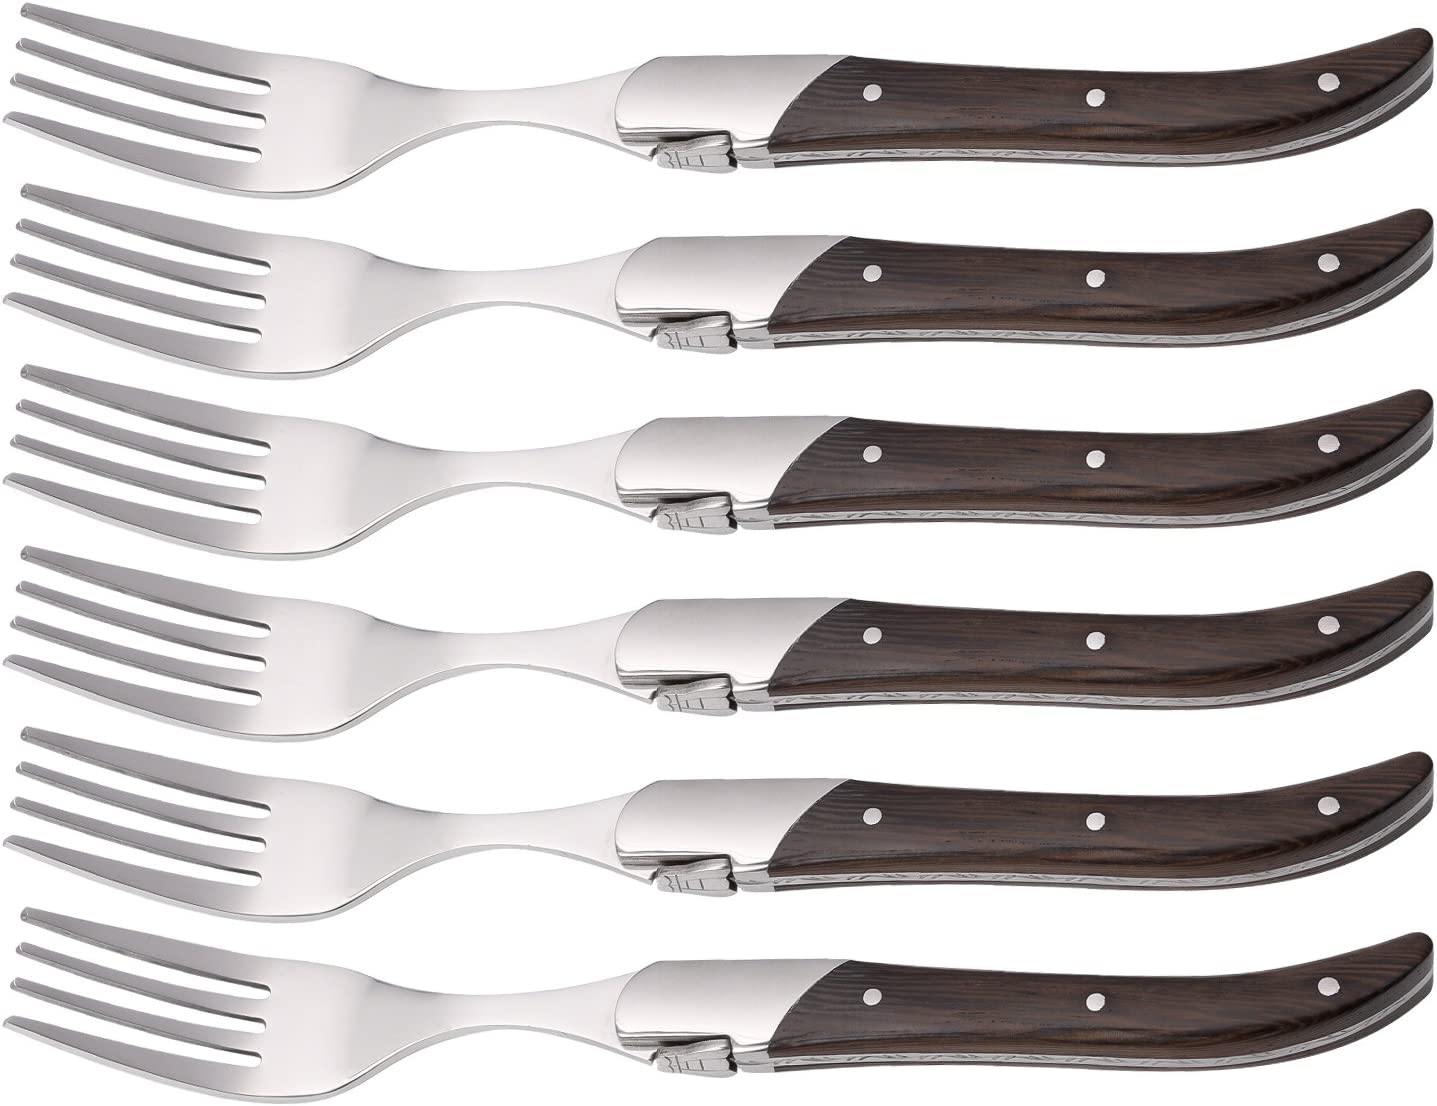 Finally popular brand Laguiole Discount is also underway by FlyingColors Dinner Forks Steel Set Stainless Wenge